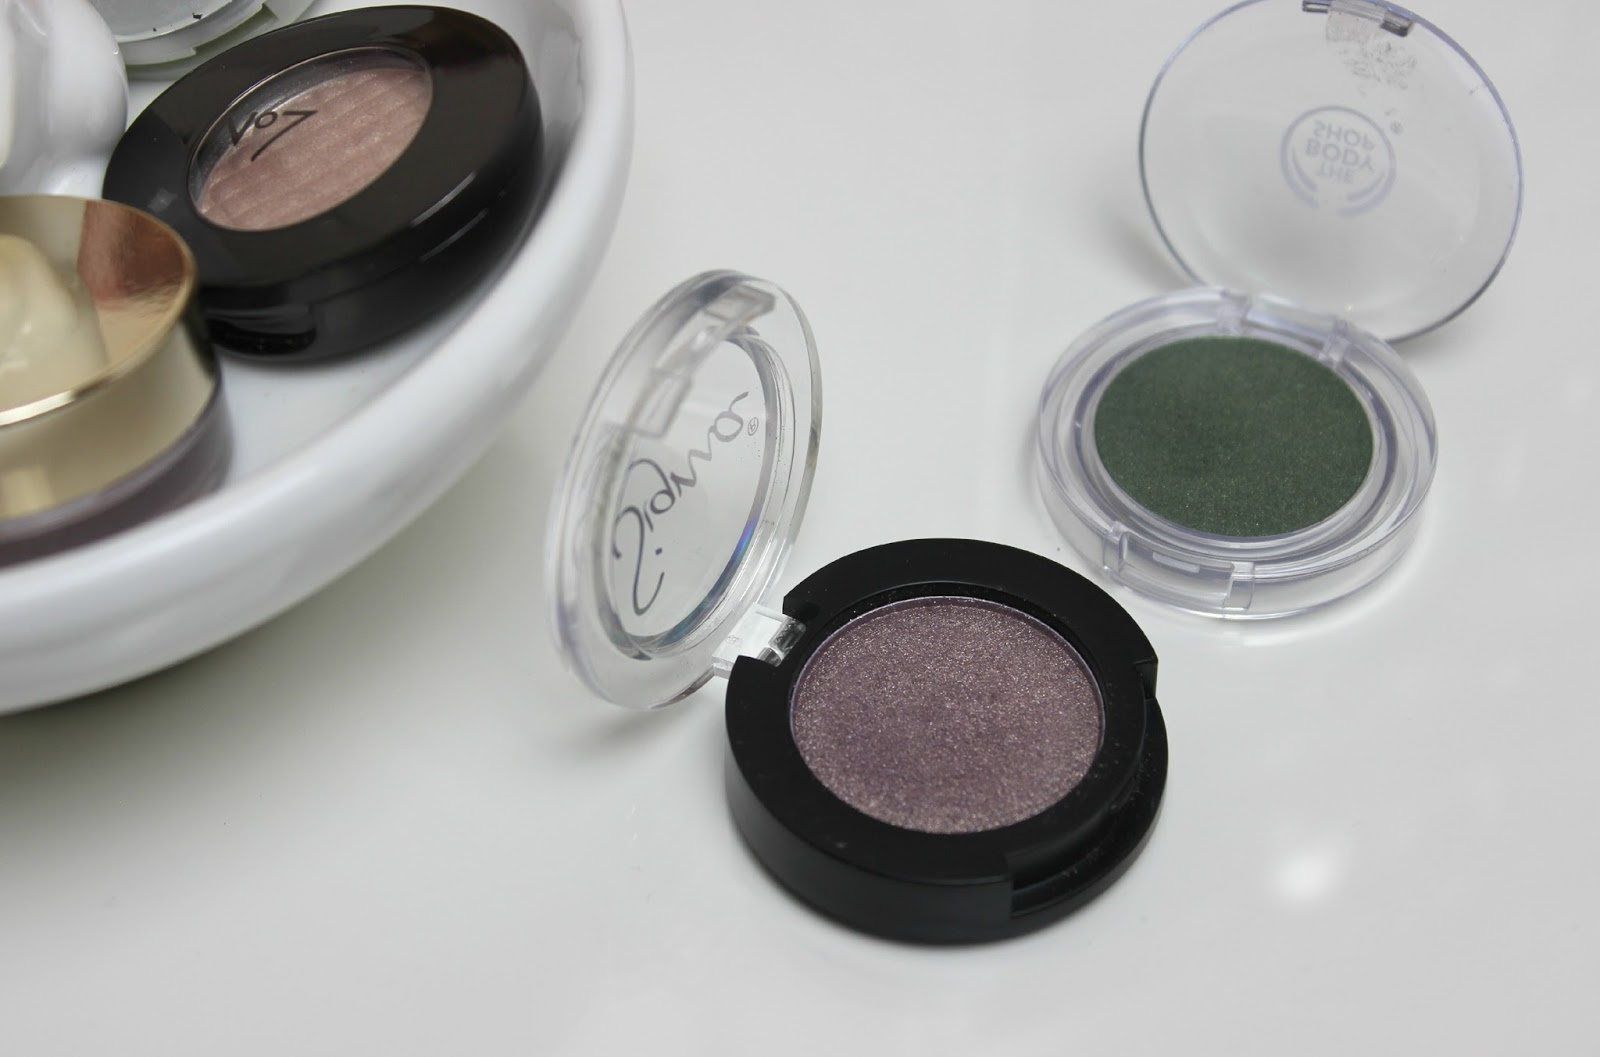 A picture of Sigma Beauty Individual Eye Shadow and The Body Shop Colour Crush Eyeshadow